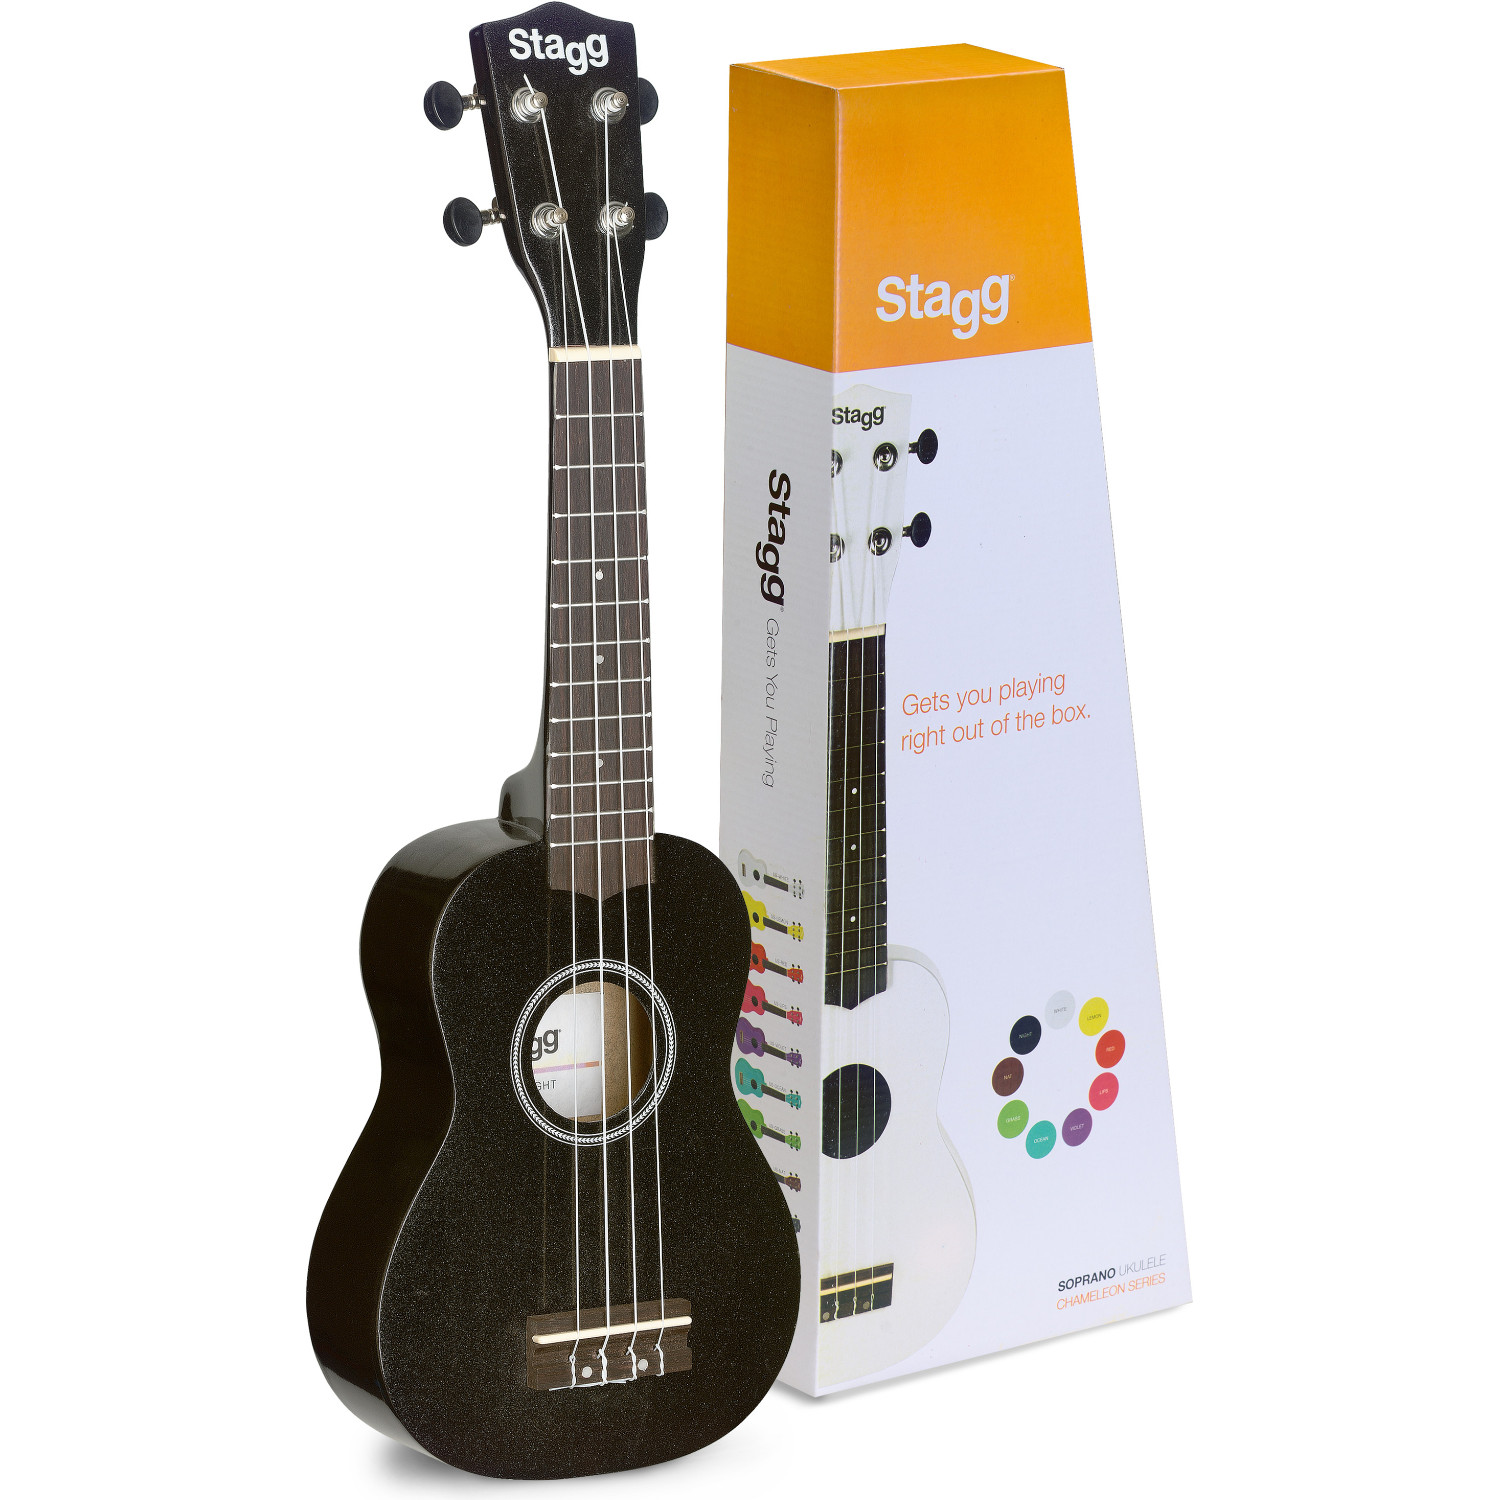 Stagg US NIGHT Sopranukulele mit Gigbag